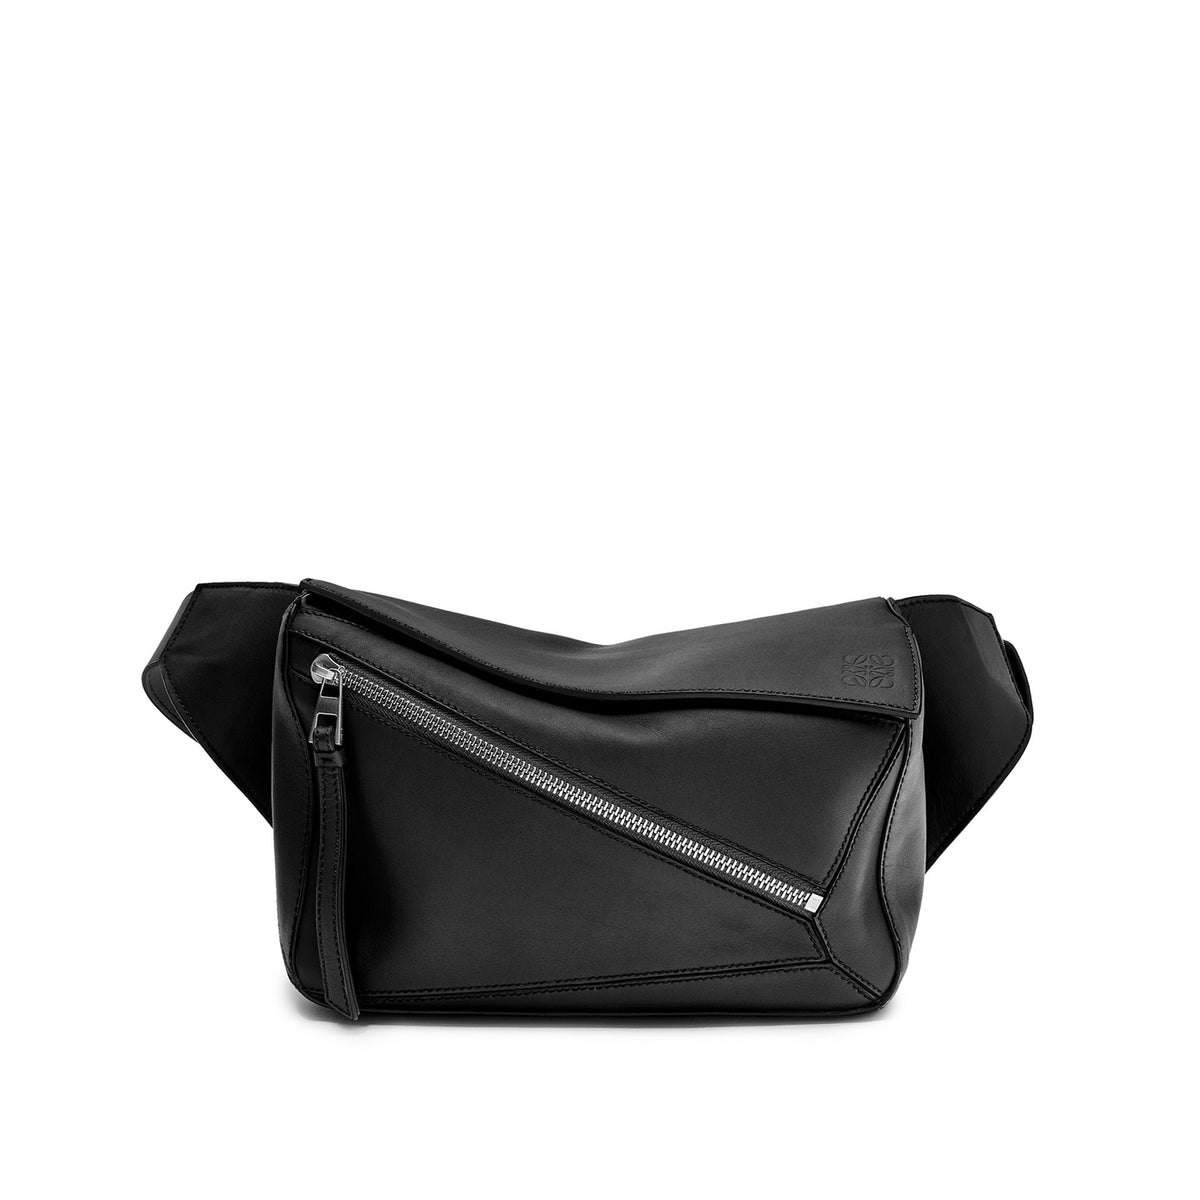 Puzzle Bumbag Small in Black